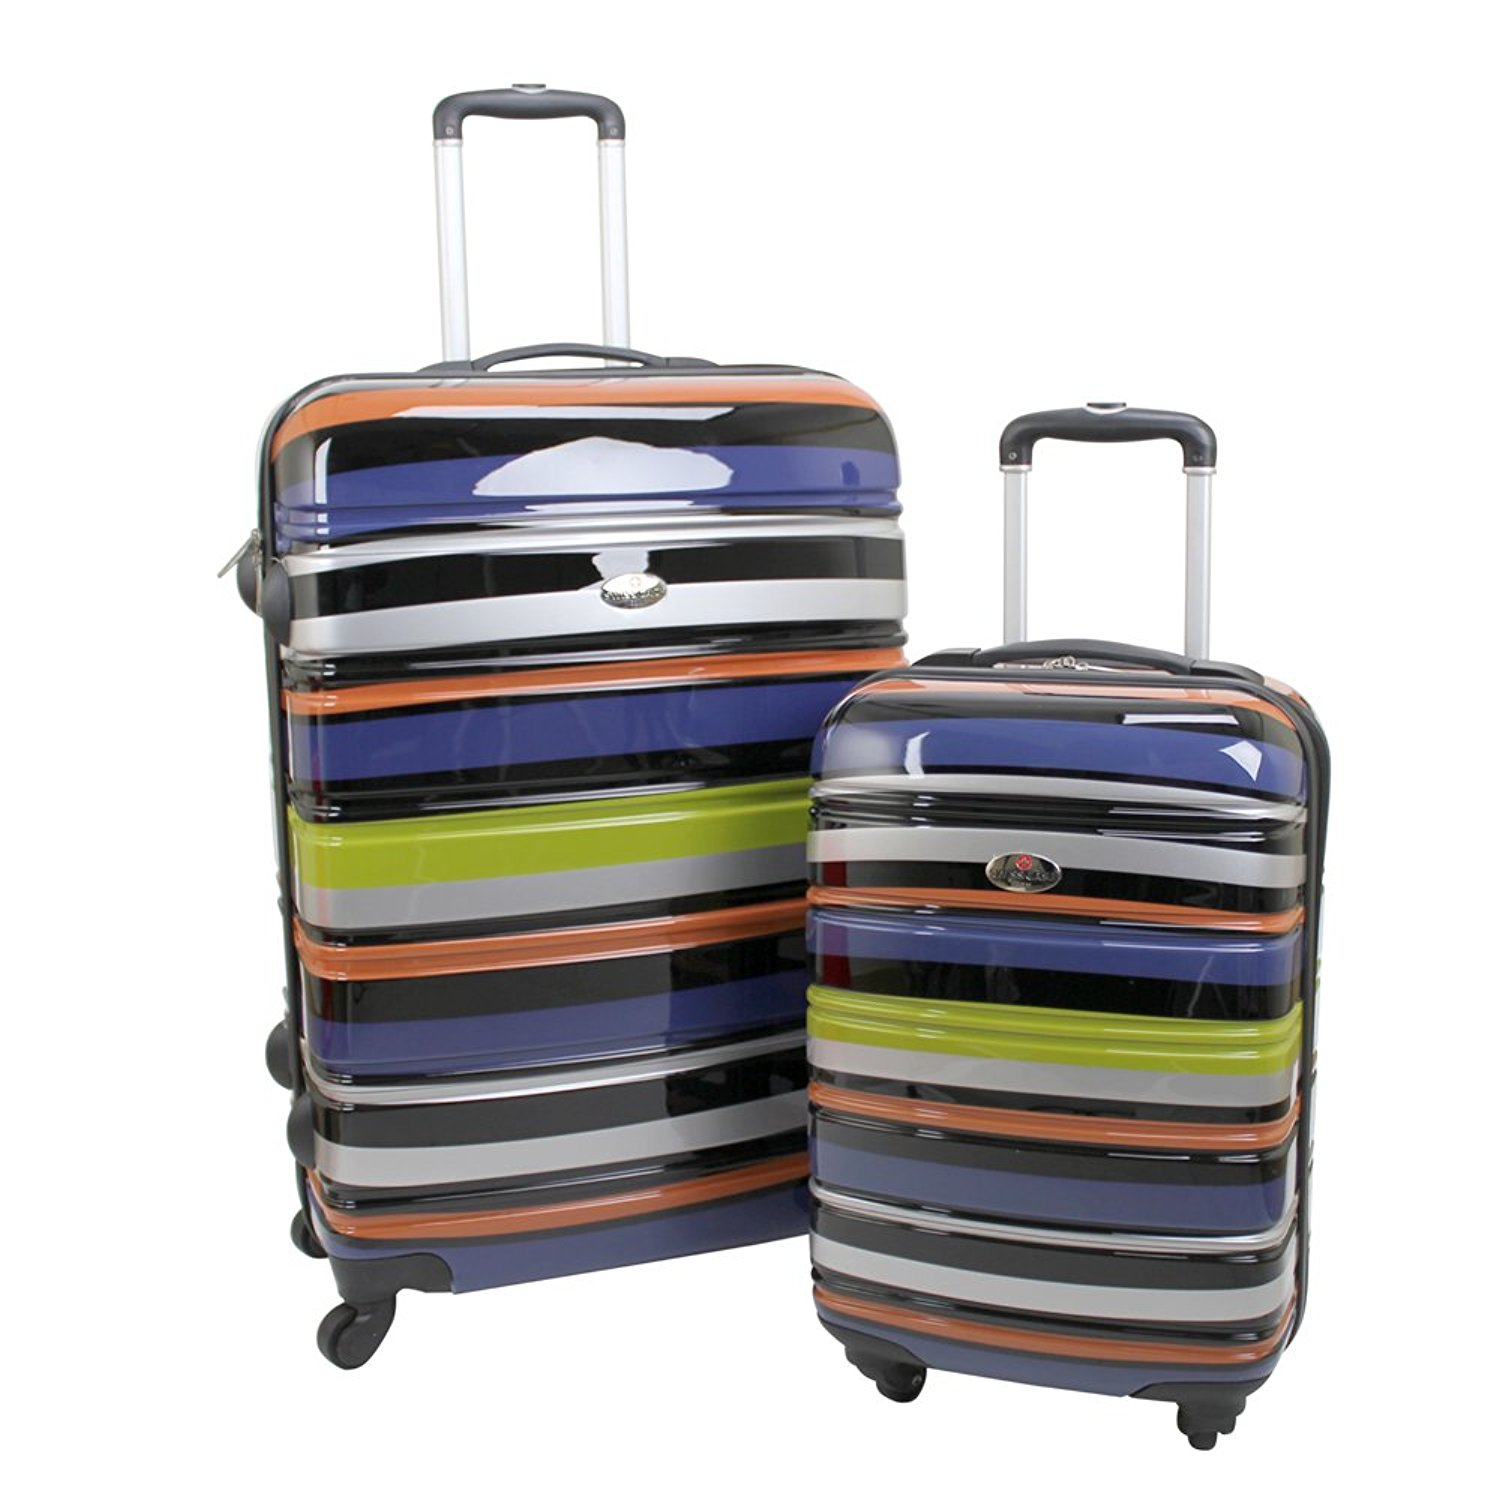 3 pcs Luggage Trolley Case Set Grey SPECIAL GIFT Only by eight24hours